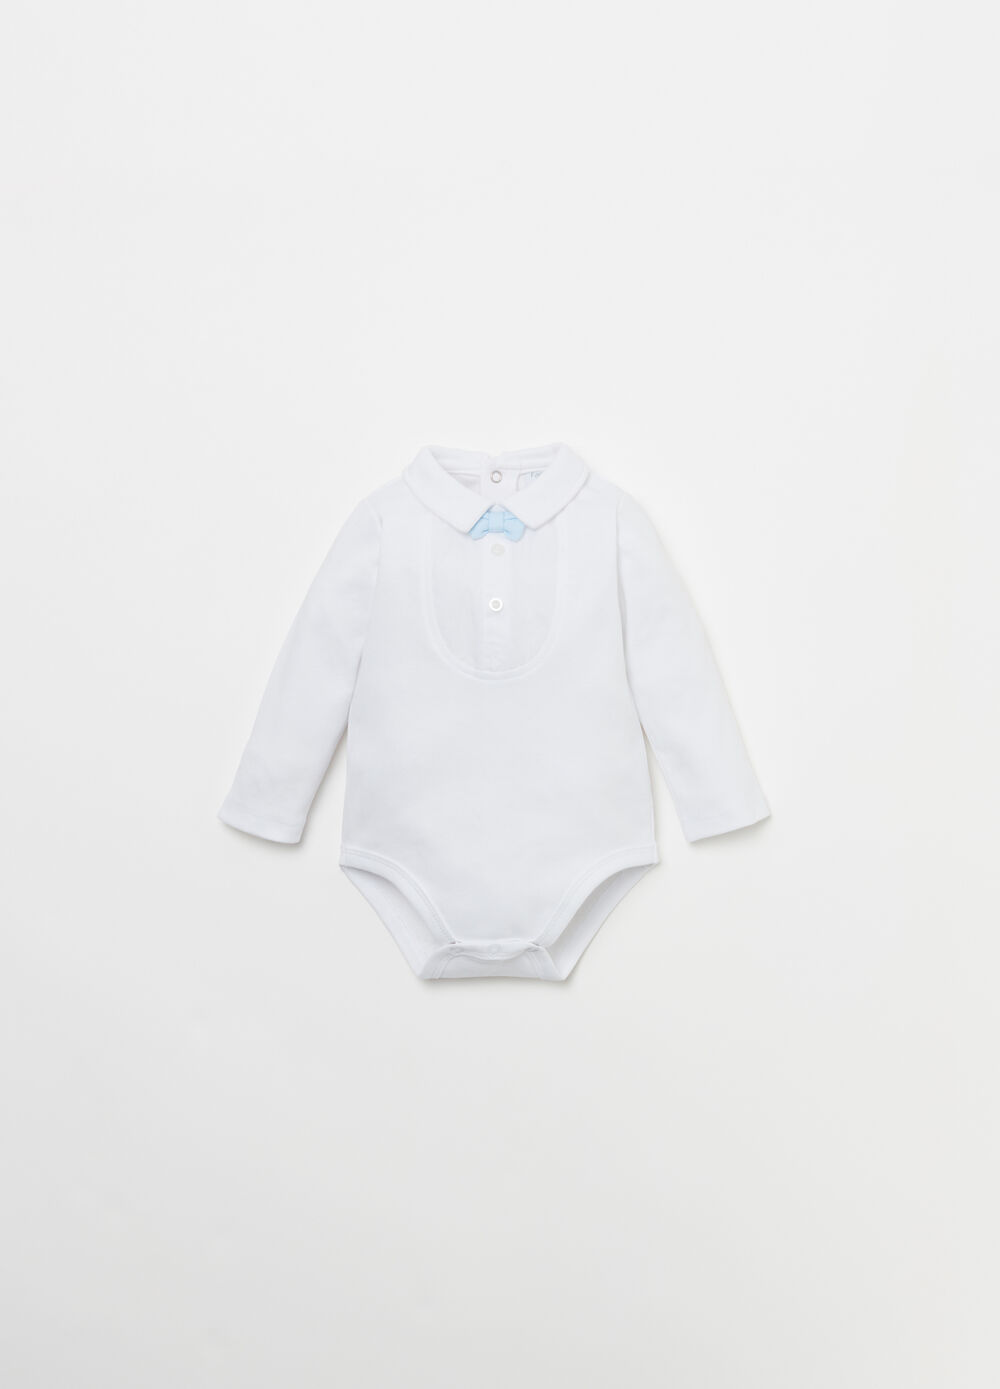 Cotton bodysuit shirt with plastron and bow tie